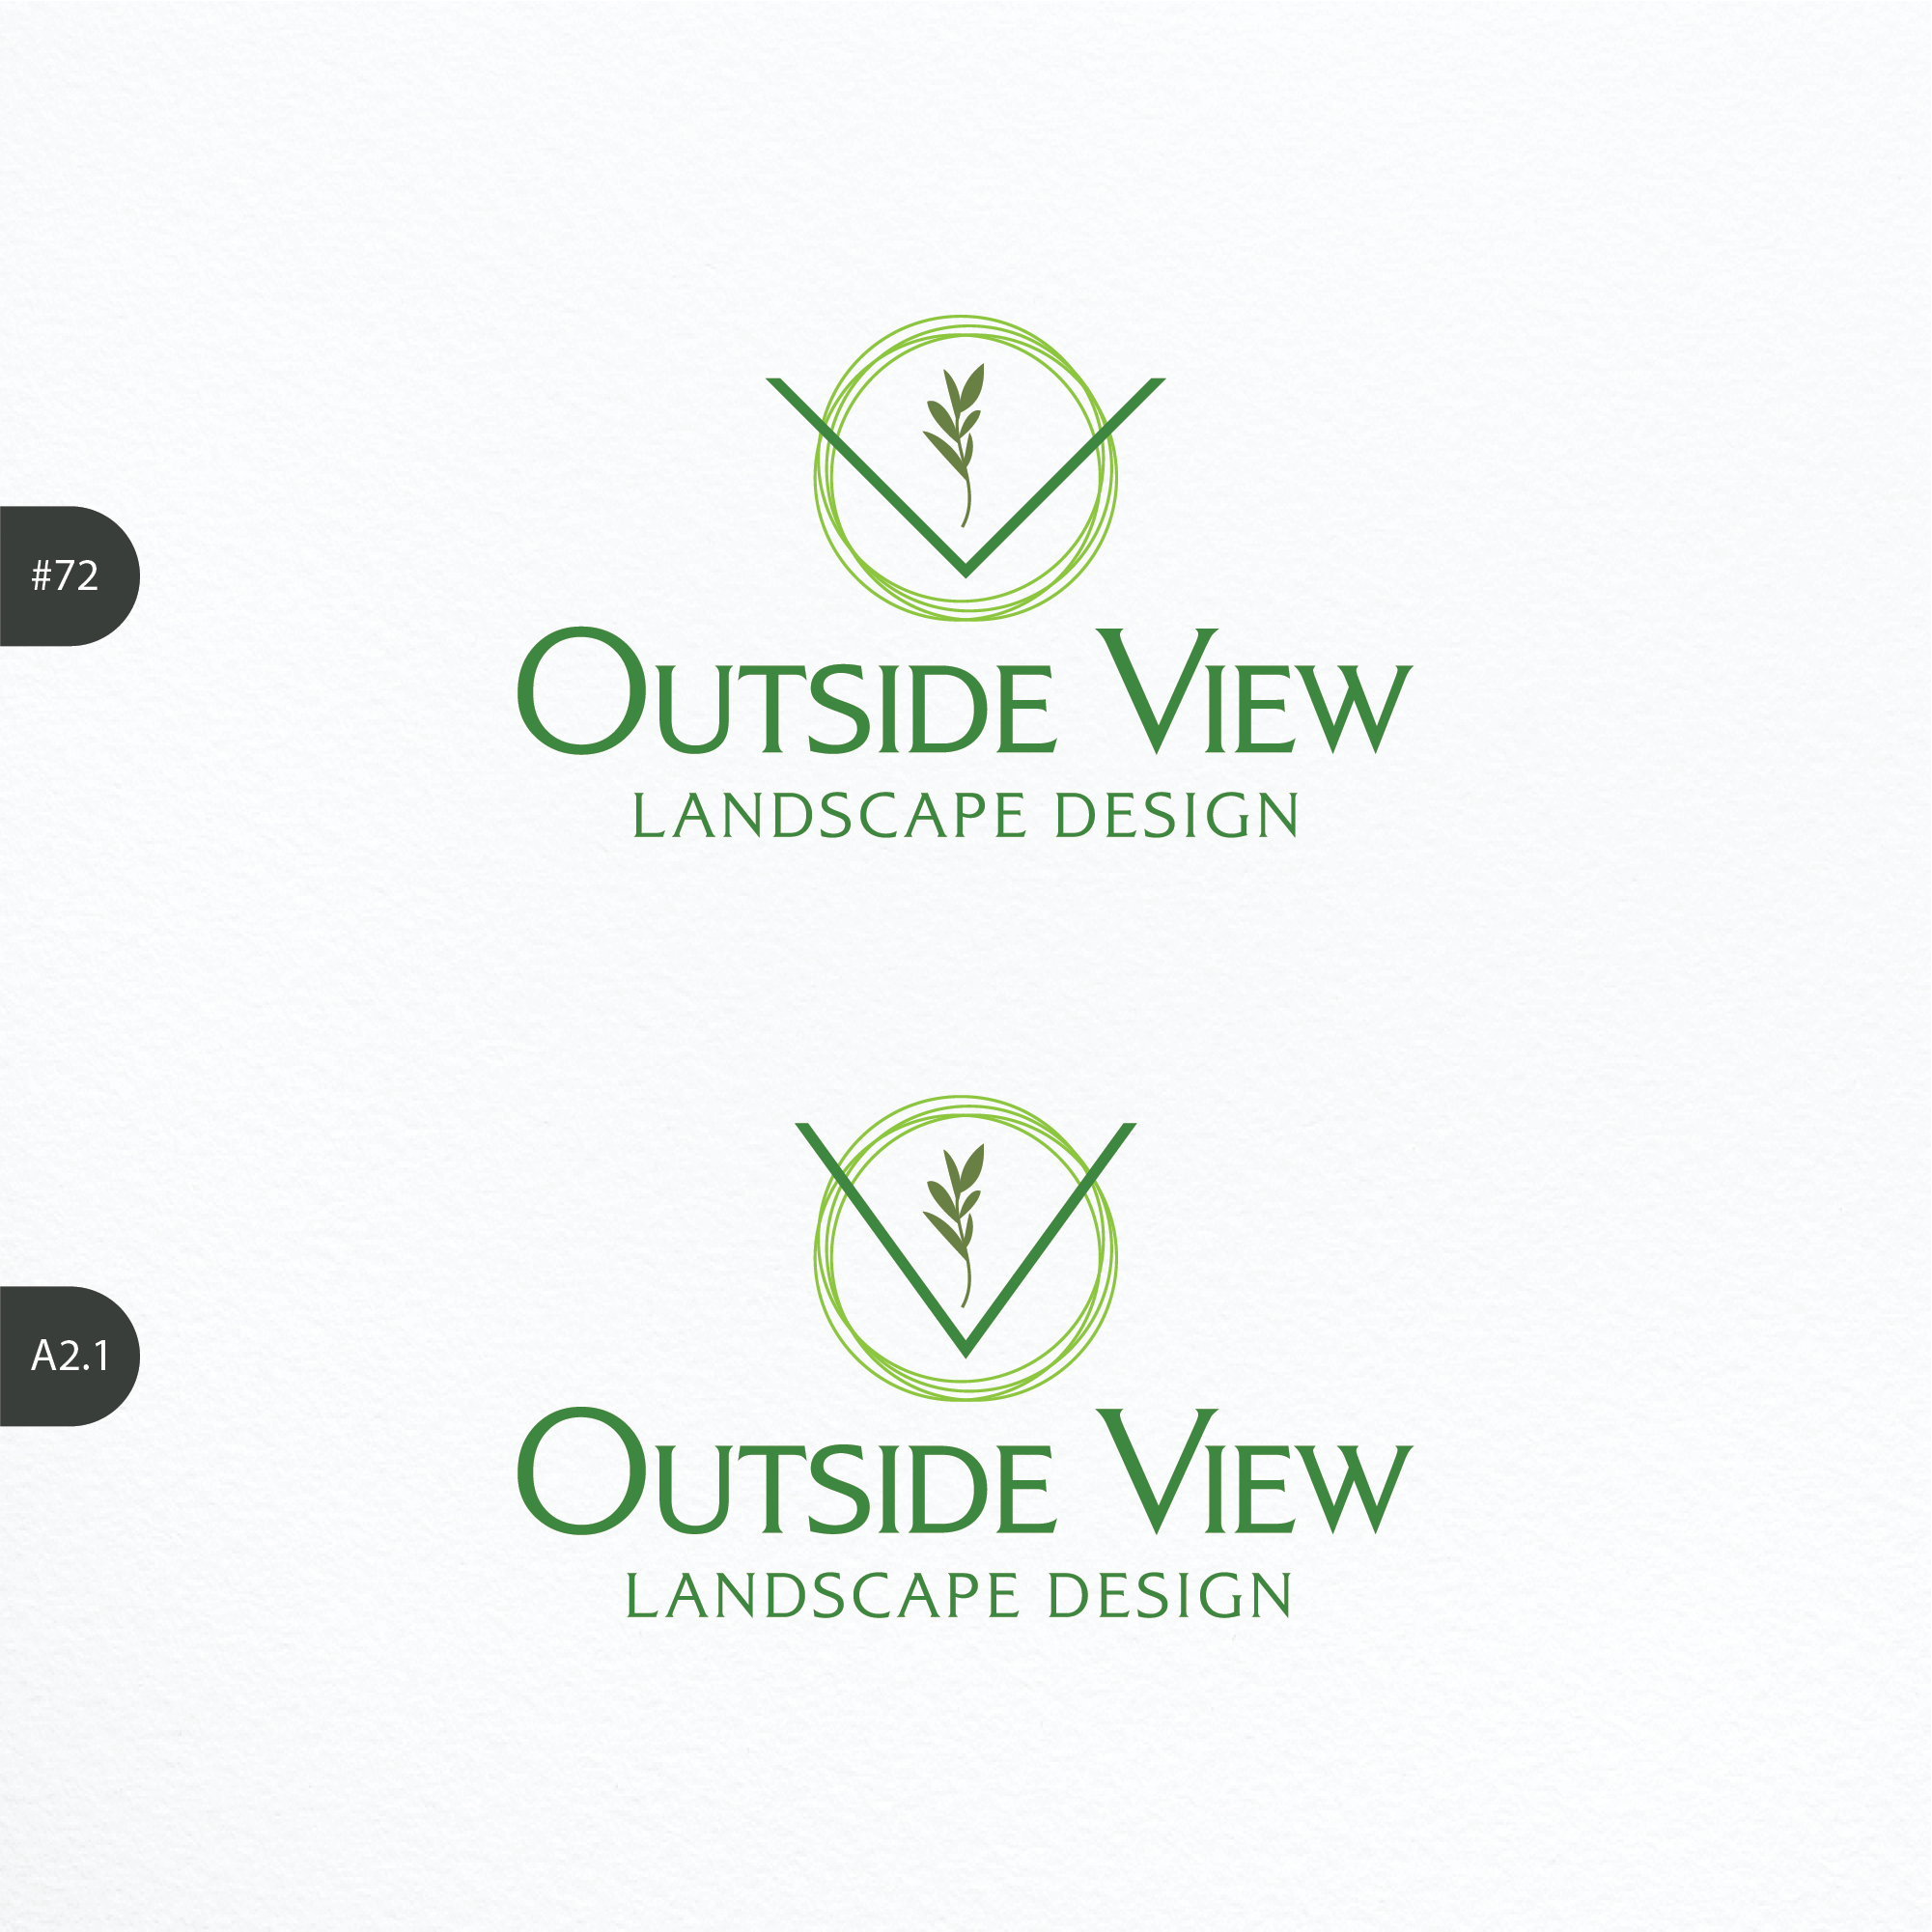 Stylish and cool logo for use on all media, for new landscape design business in Sydney Australia